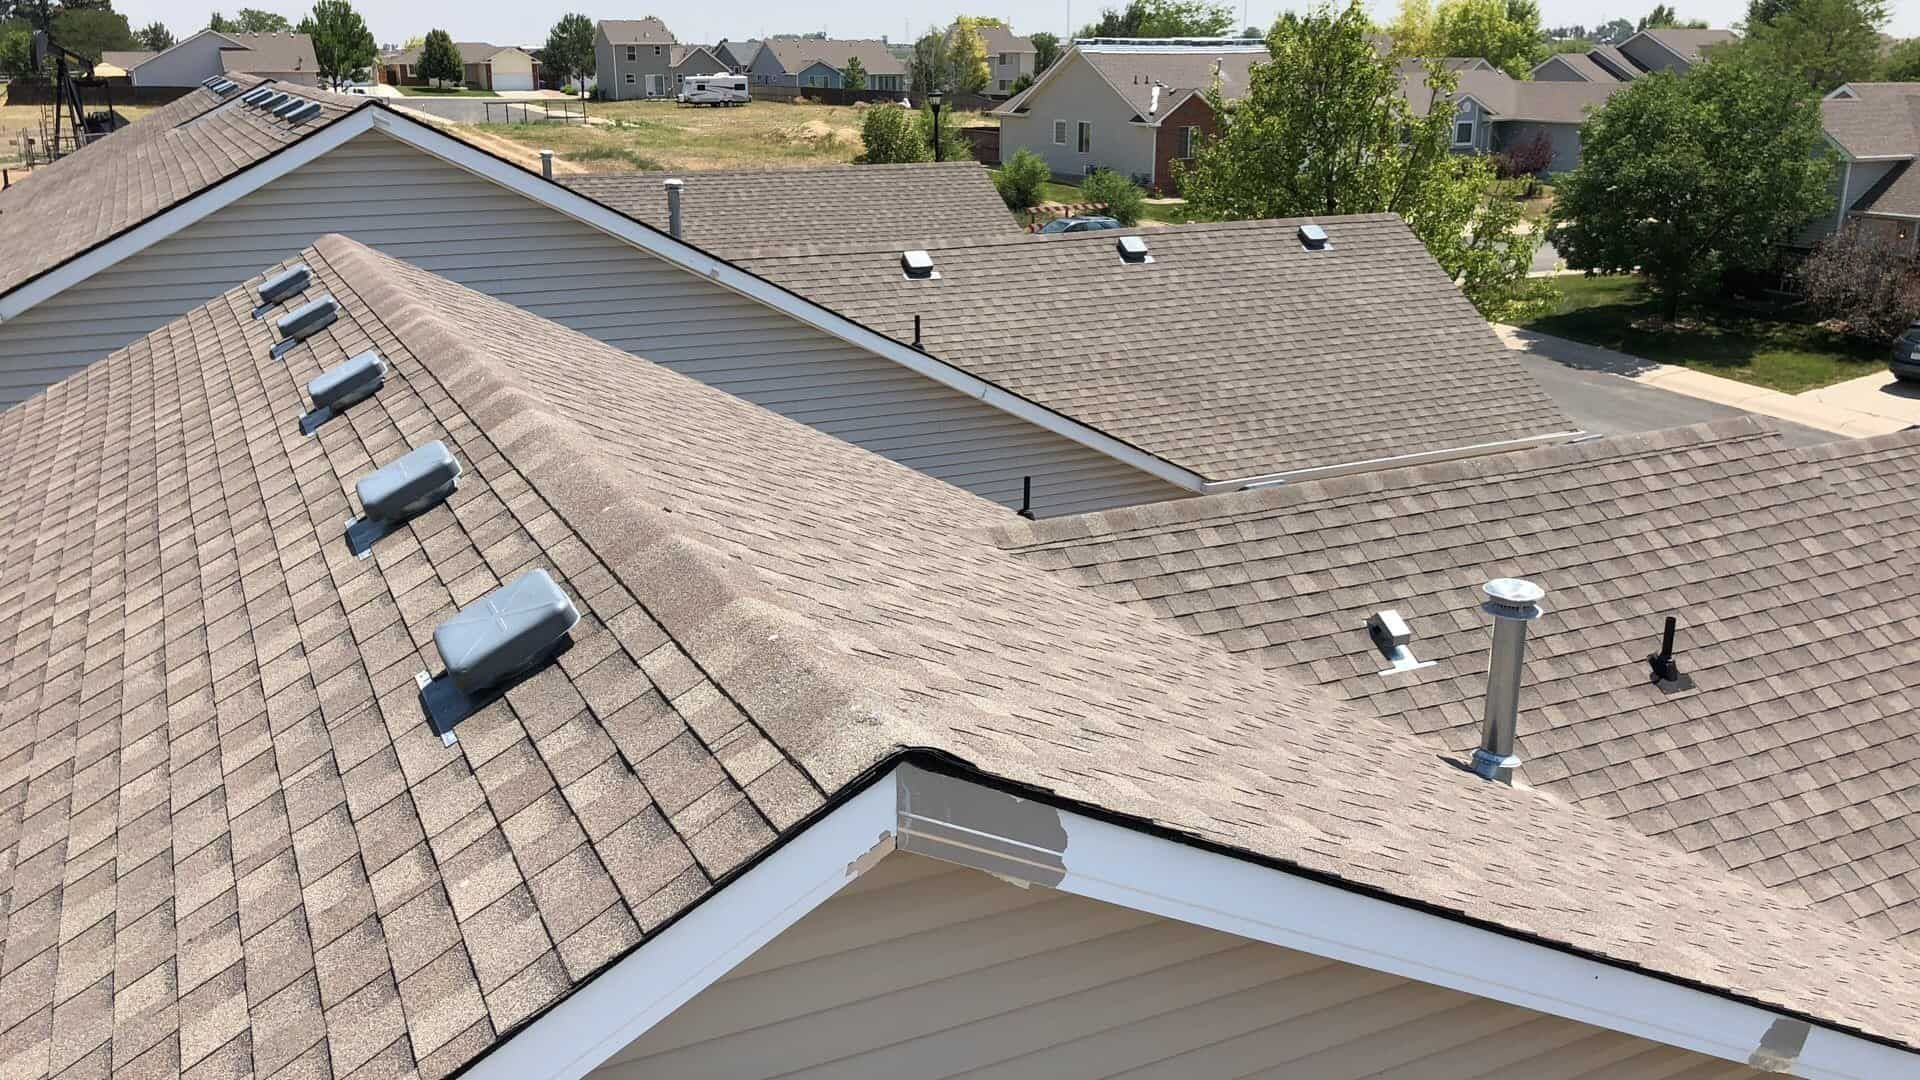 5 Questions To Ask Your Roofing Contractor Roofing Contractors Roofing This Or That Questions